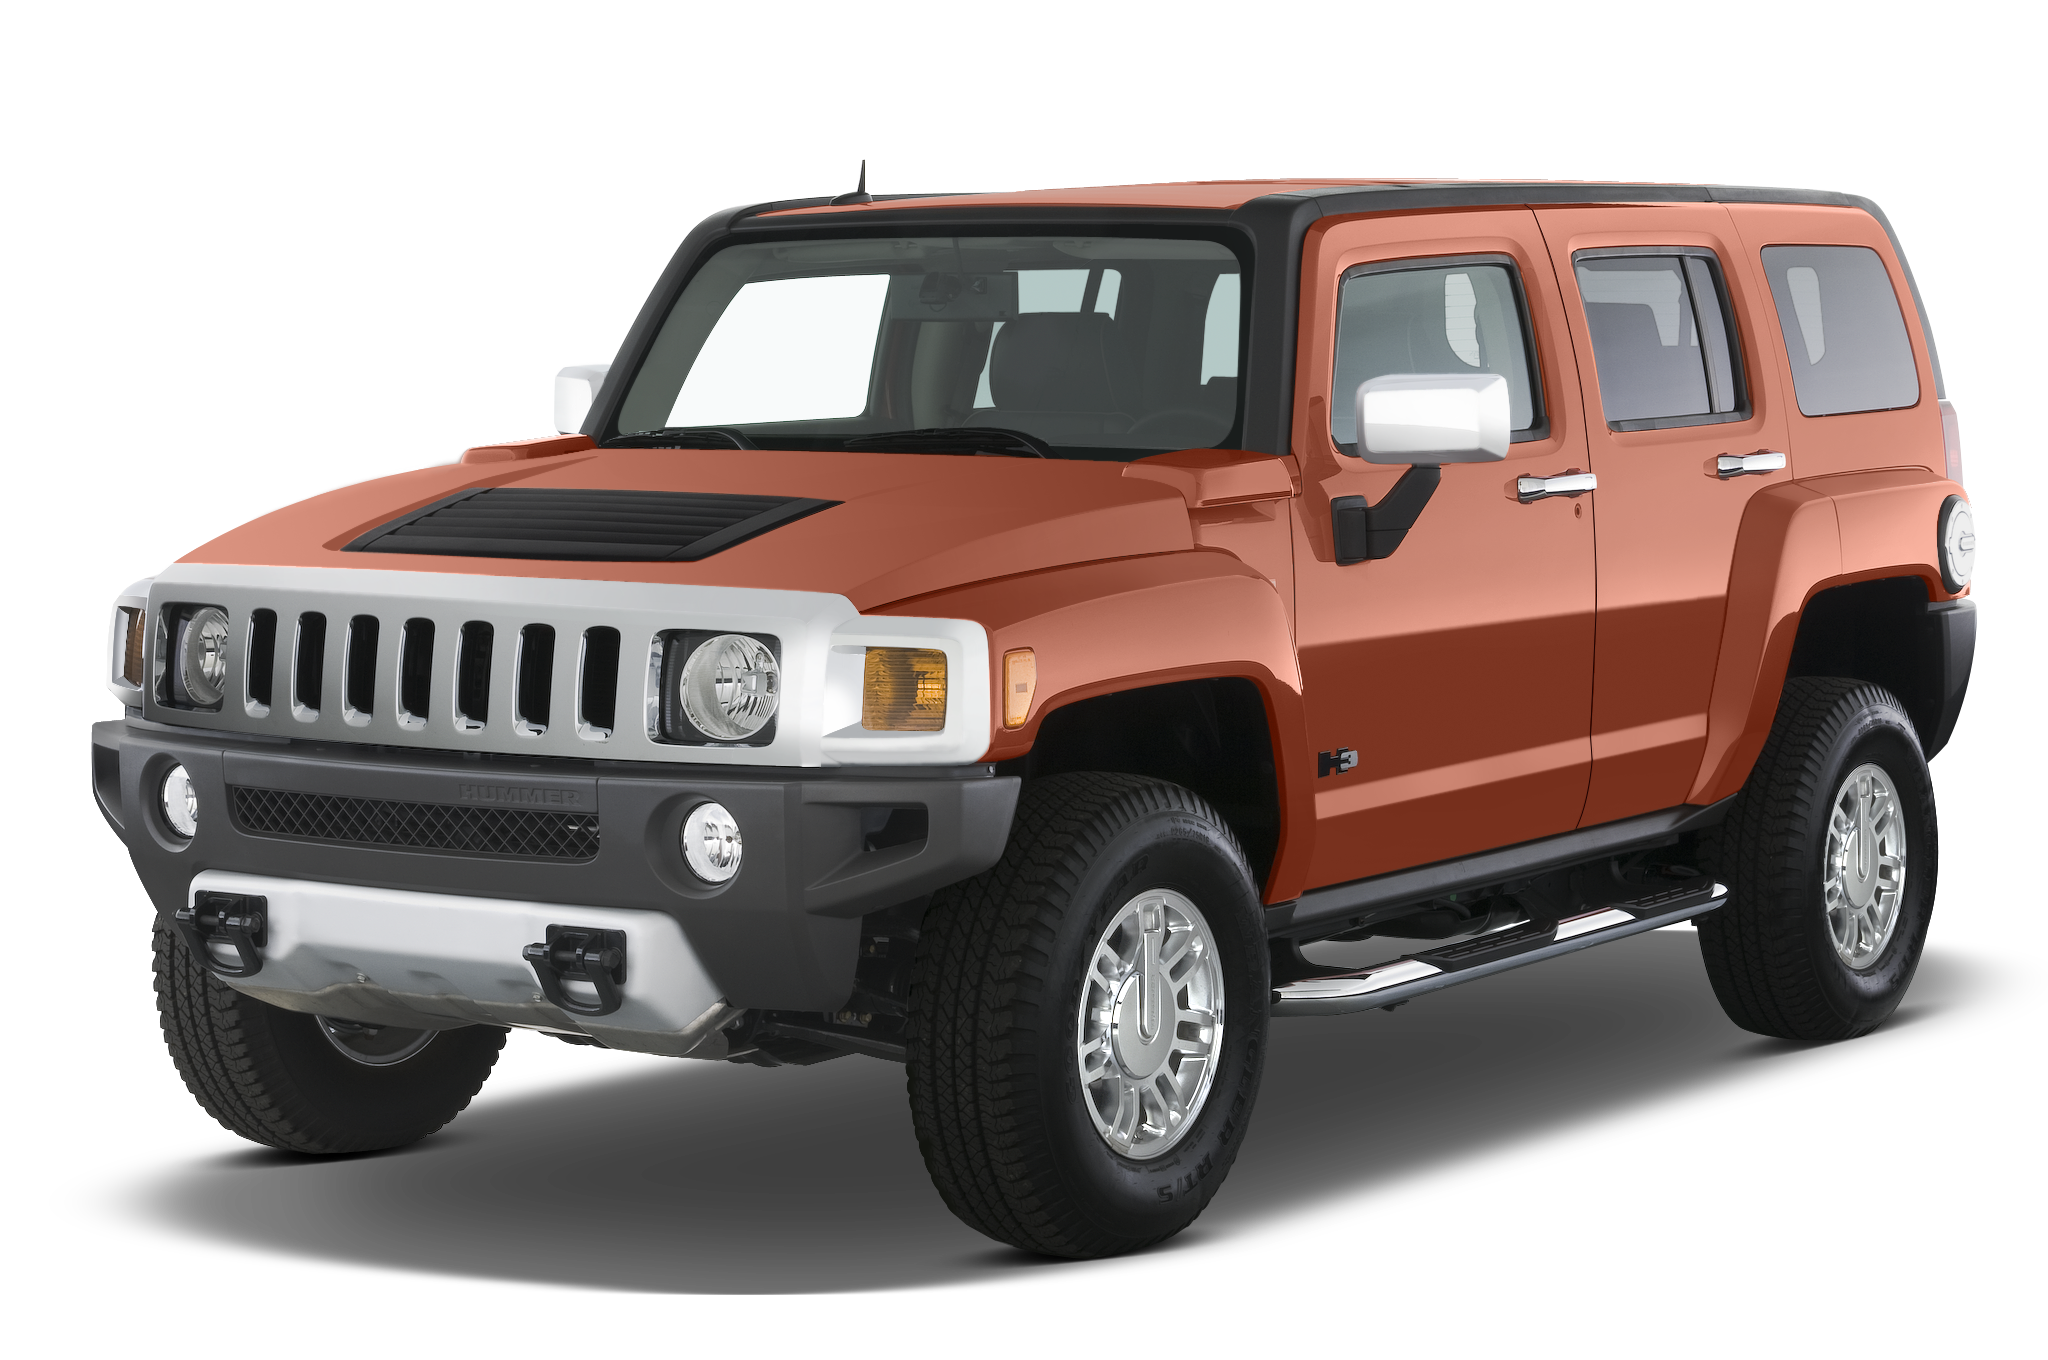 loose hood trim causes gm to recall 198 000 hummer h3 and. Black Bedroom Furniture Sets. Home Design Ideas